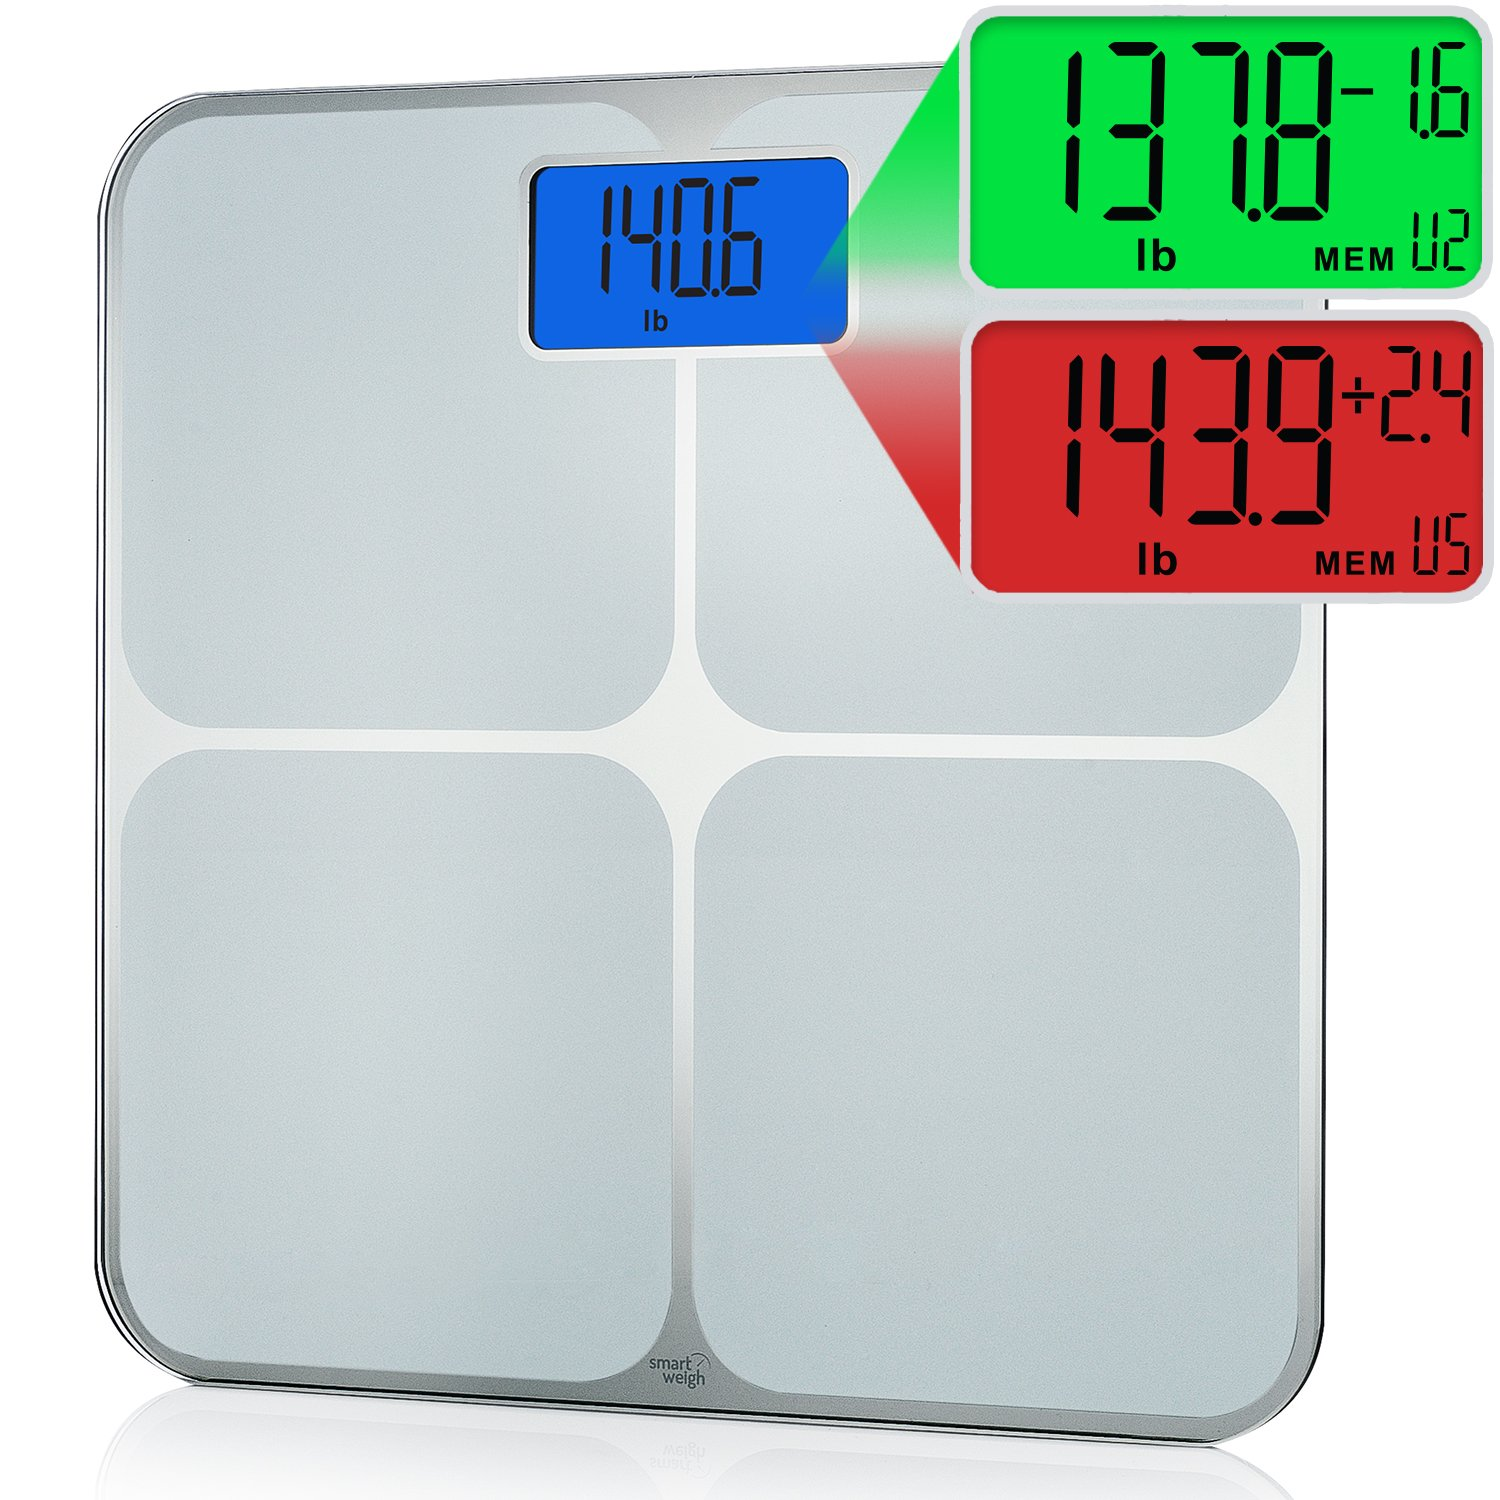 Smart Weigh Digital Body Weight Bathroom Scale with Weight Tracking and Step-On Technology, 440 Pounds, Recognizes and Stores 8 Users [2018 Upgraded Version]